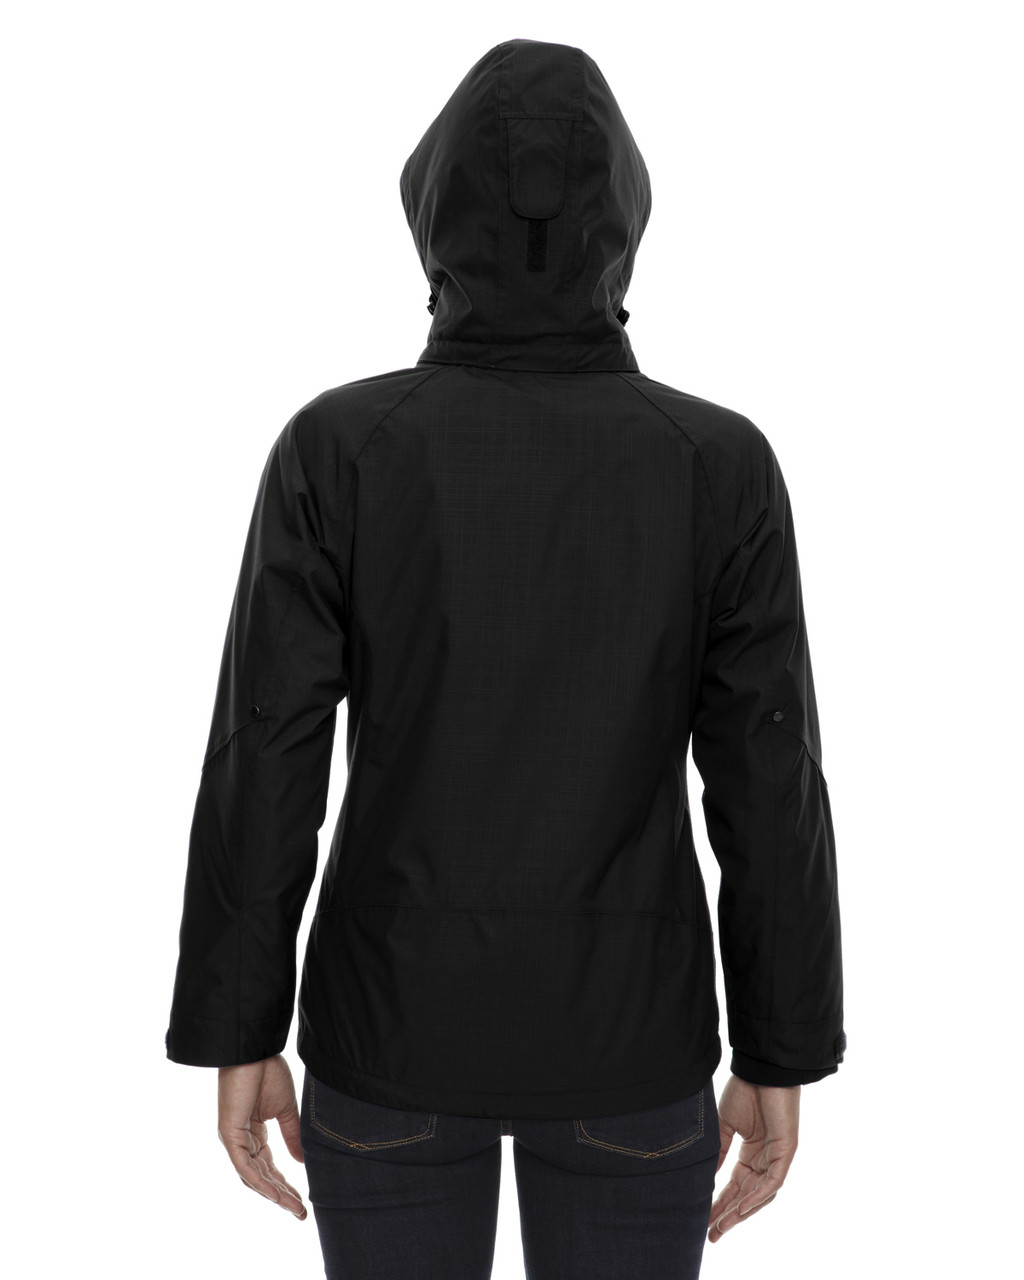 Black - Back 78178 North End Caprice 3-in-1 Jacket with Soft Shell Liner | Blankclothing.ca